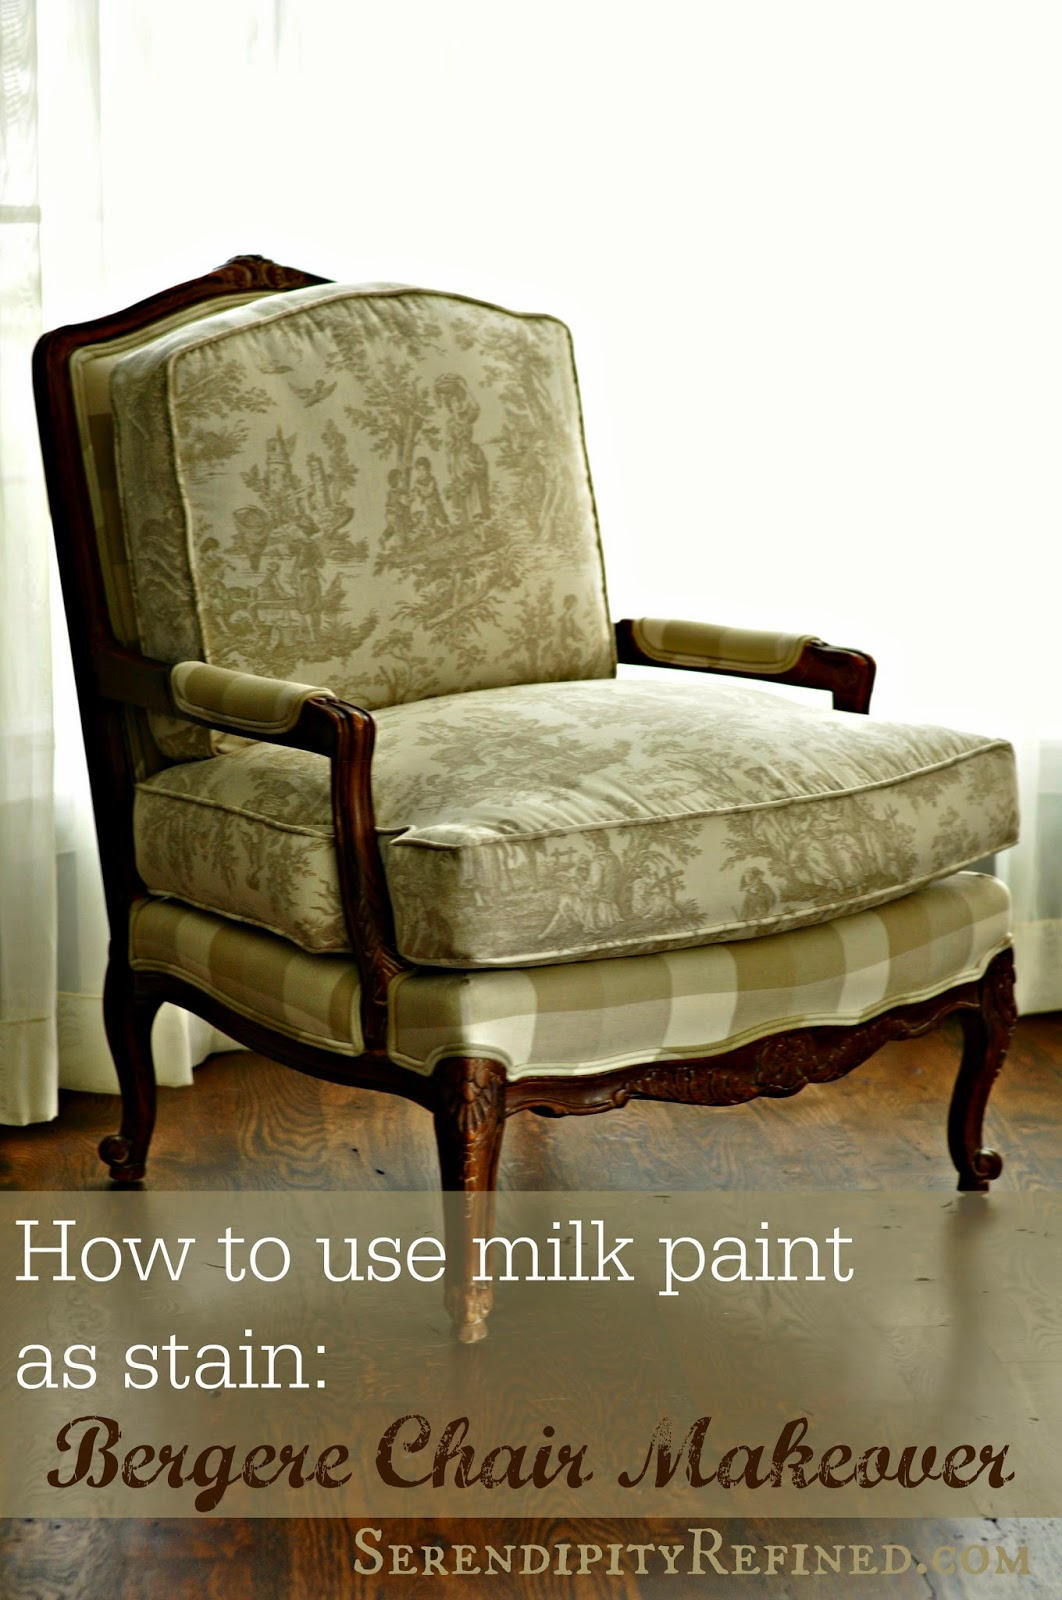 Today I M Using Miss Mustard Seed Milk Paint Curio As Stain To Makeover These Fabulous Reproduction French Bergere Chairs That